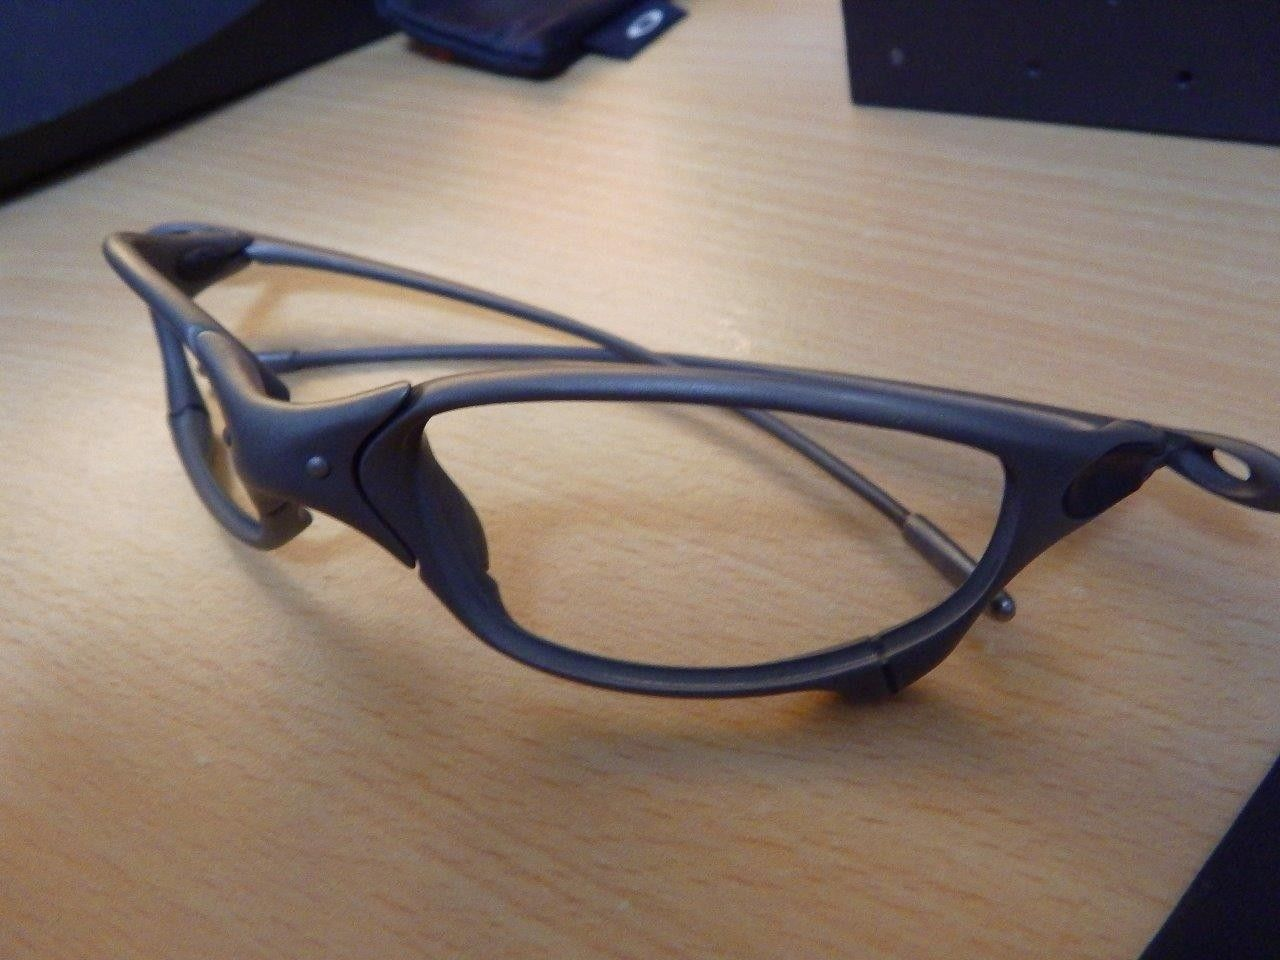 What Juliet frame finish is this? - IMGA0636.JPG